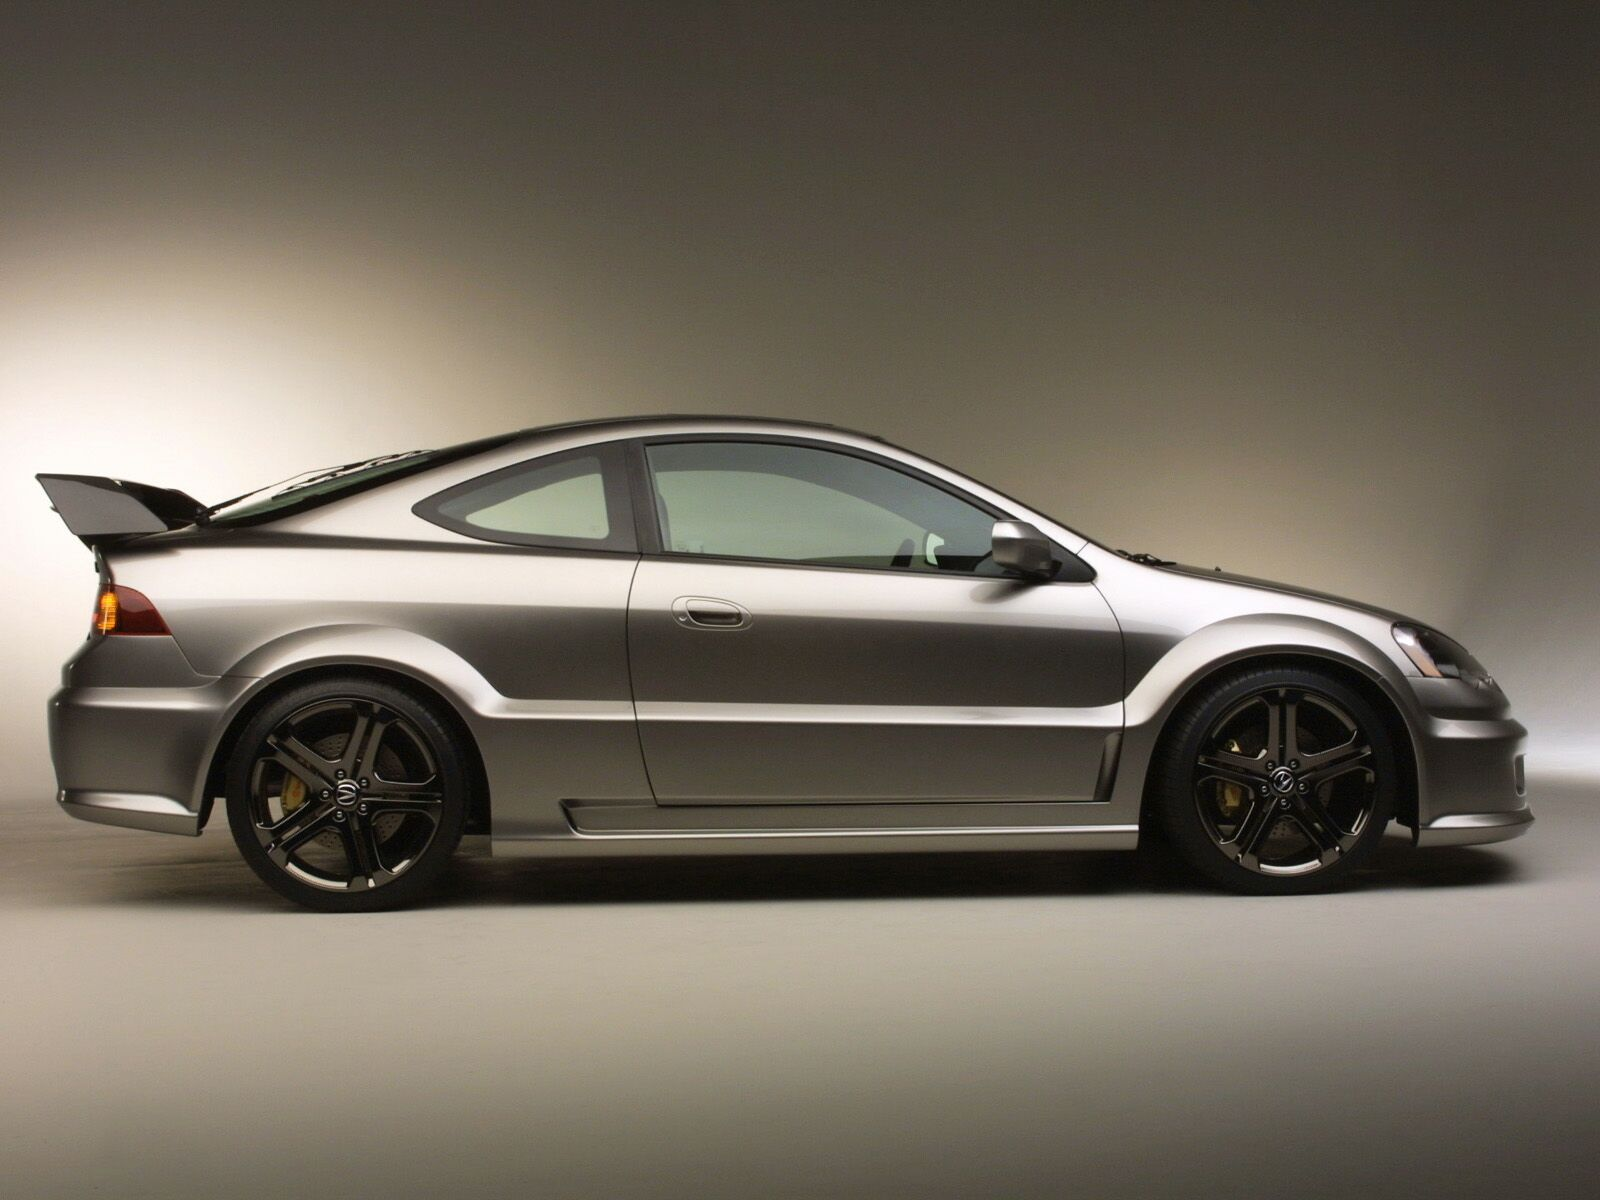 Acura Rsx Wallpaper And Background Image 1600x1200 Id 524295